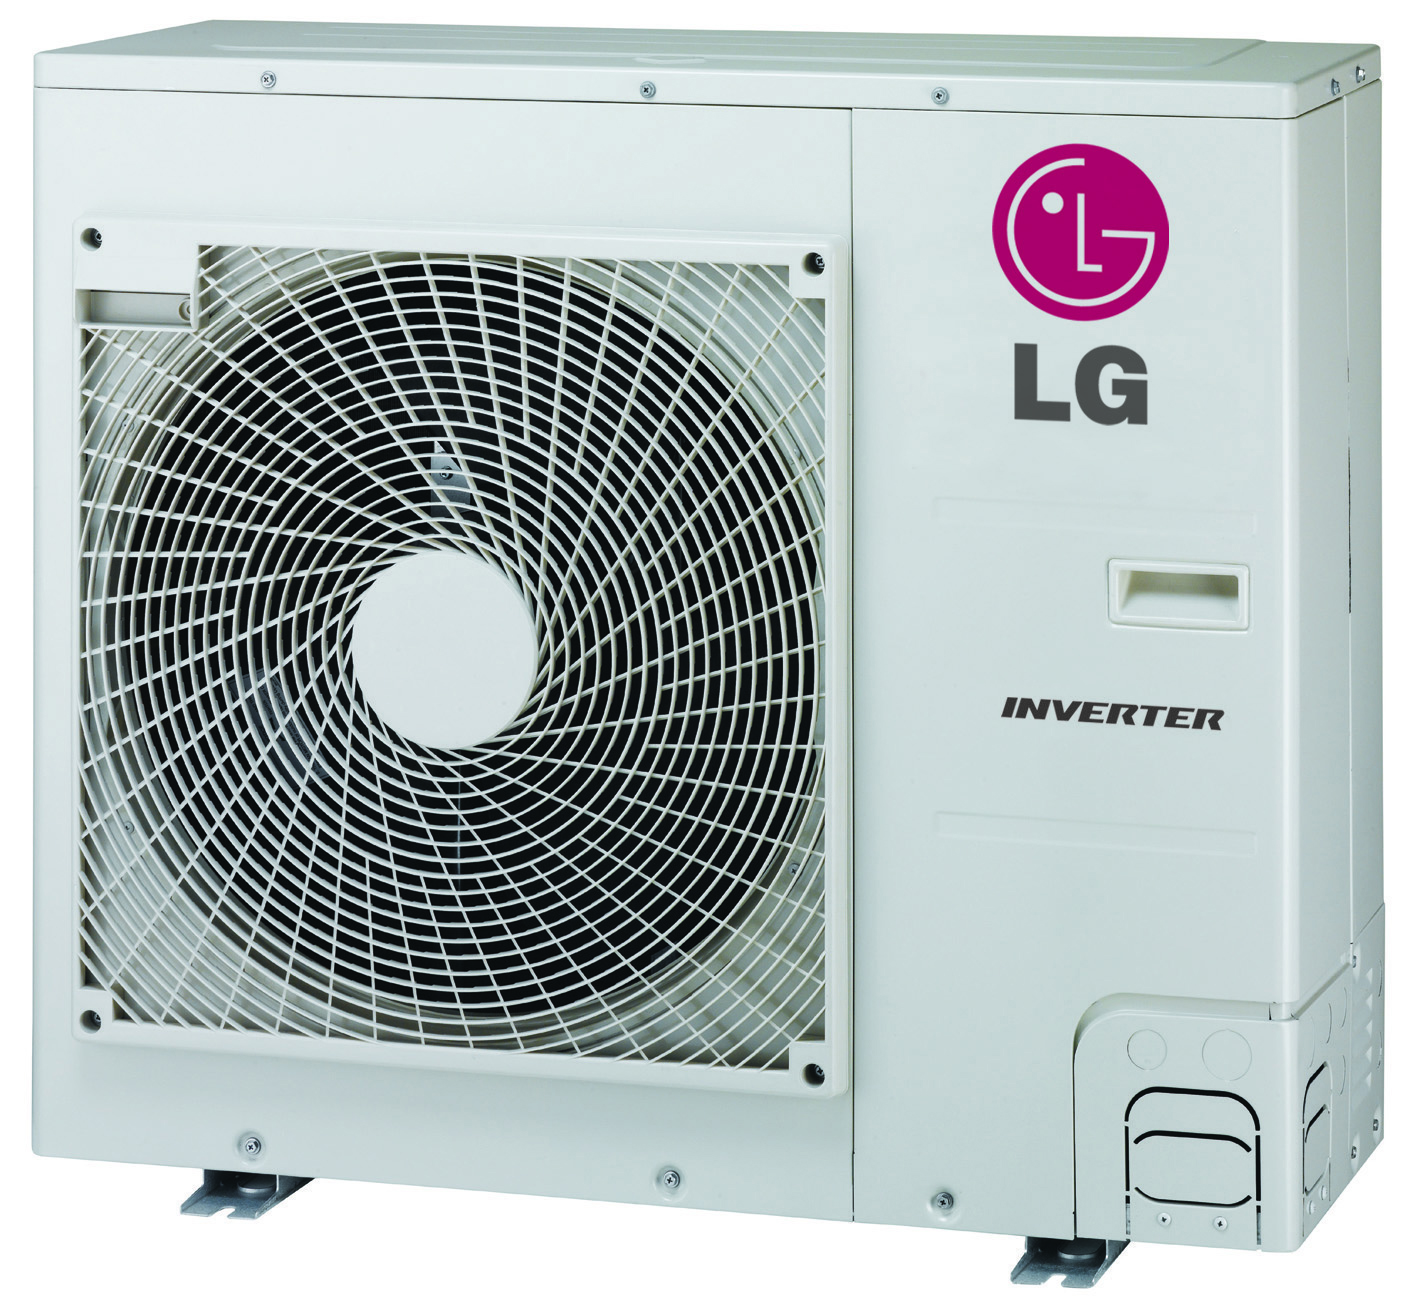 Joe Cools advises that adequate clearance is required around, on top and in front of the air conditioning unit so it can effectively operate.